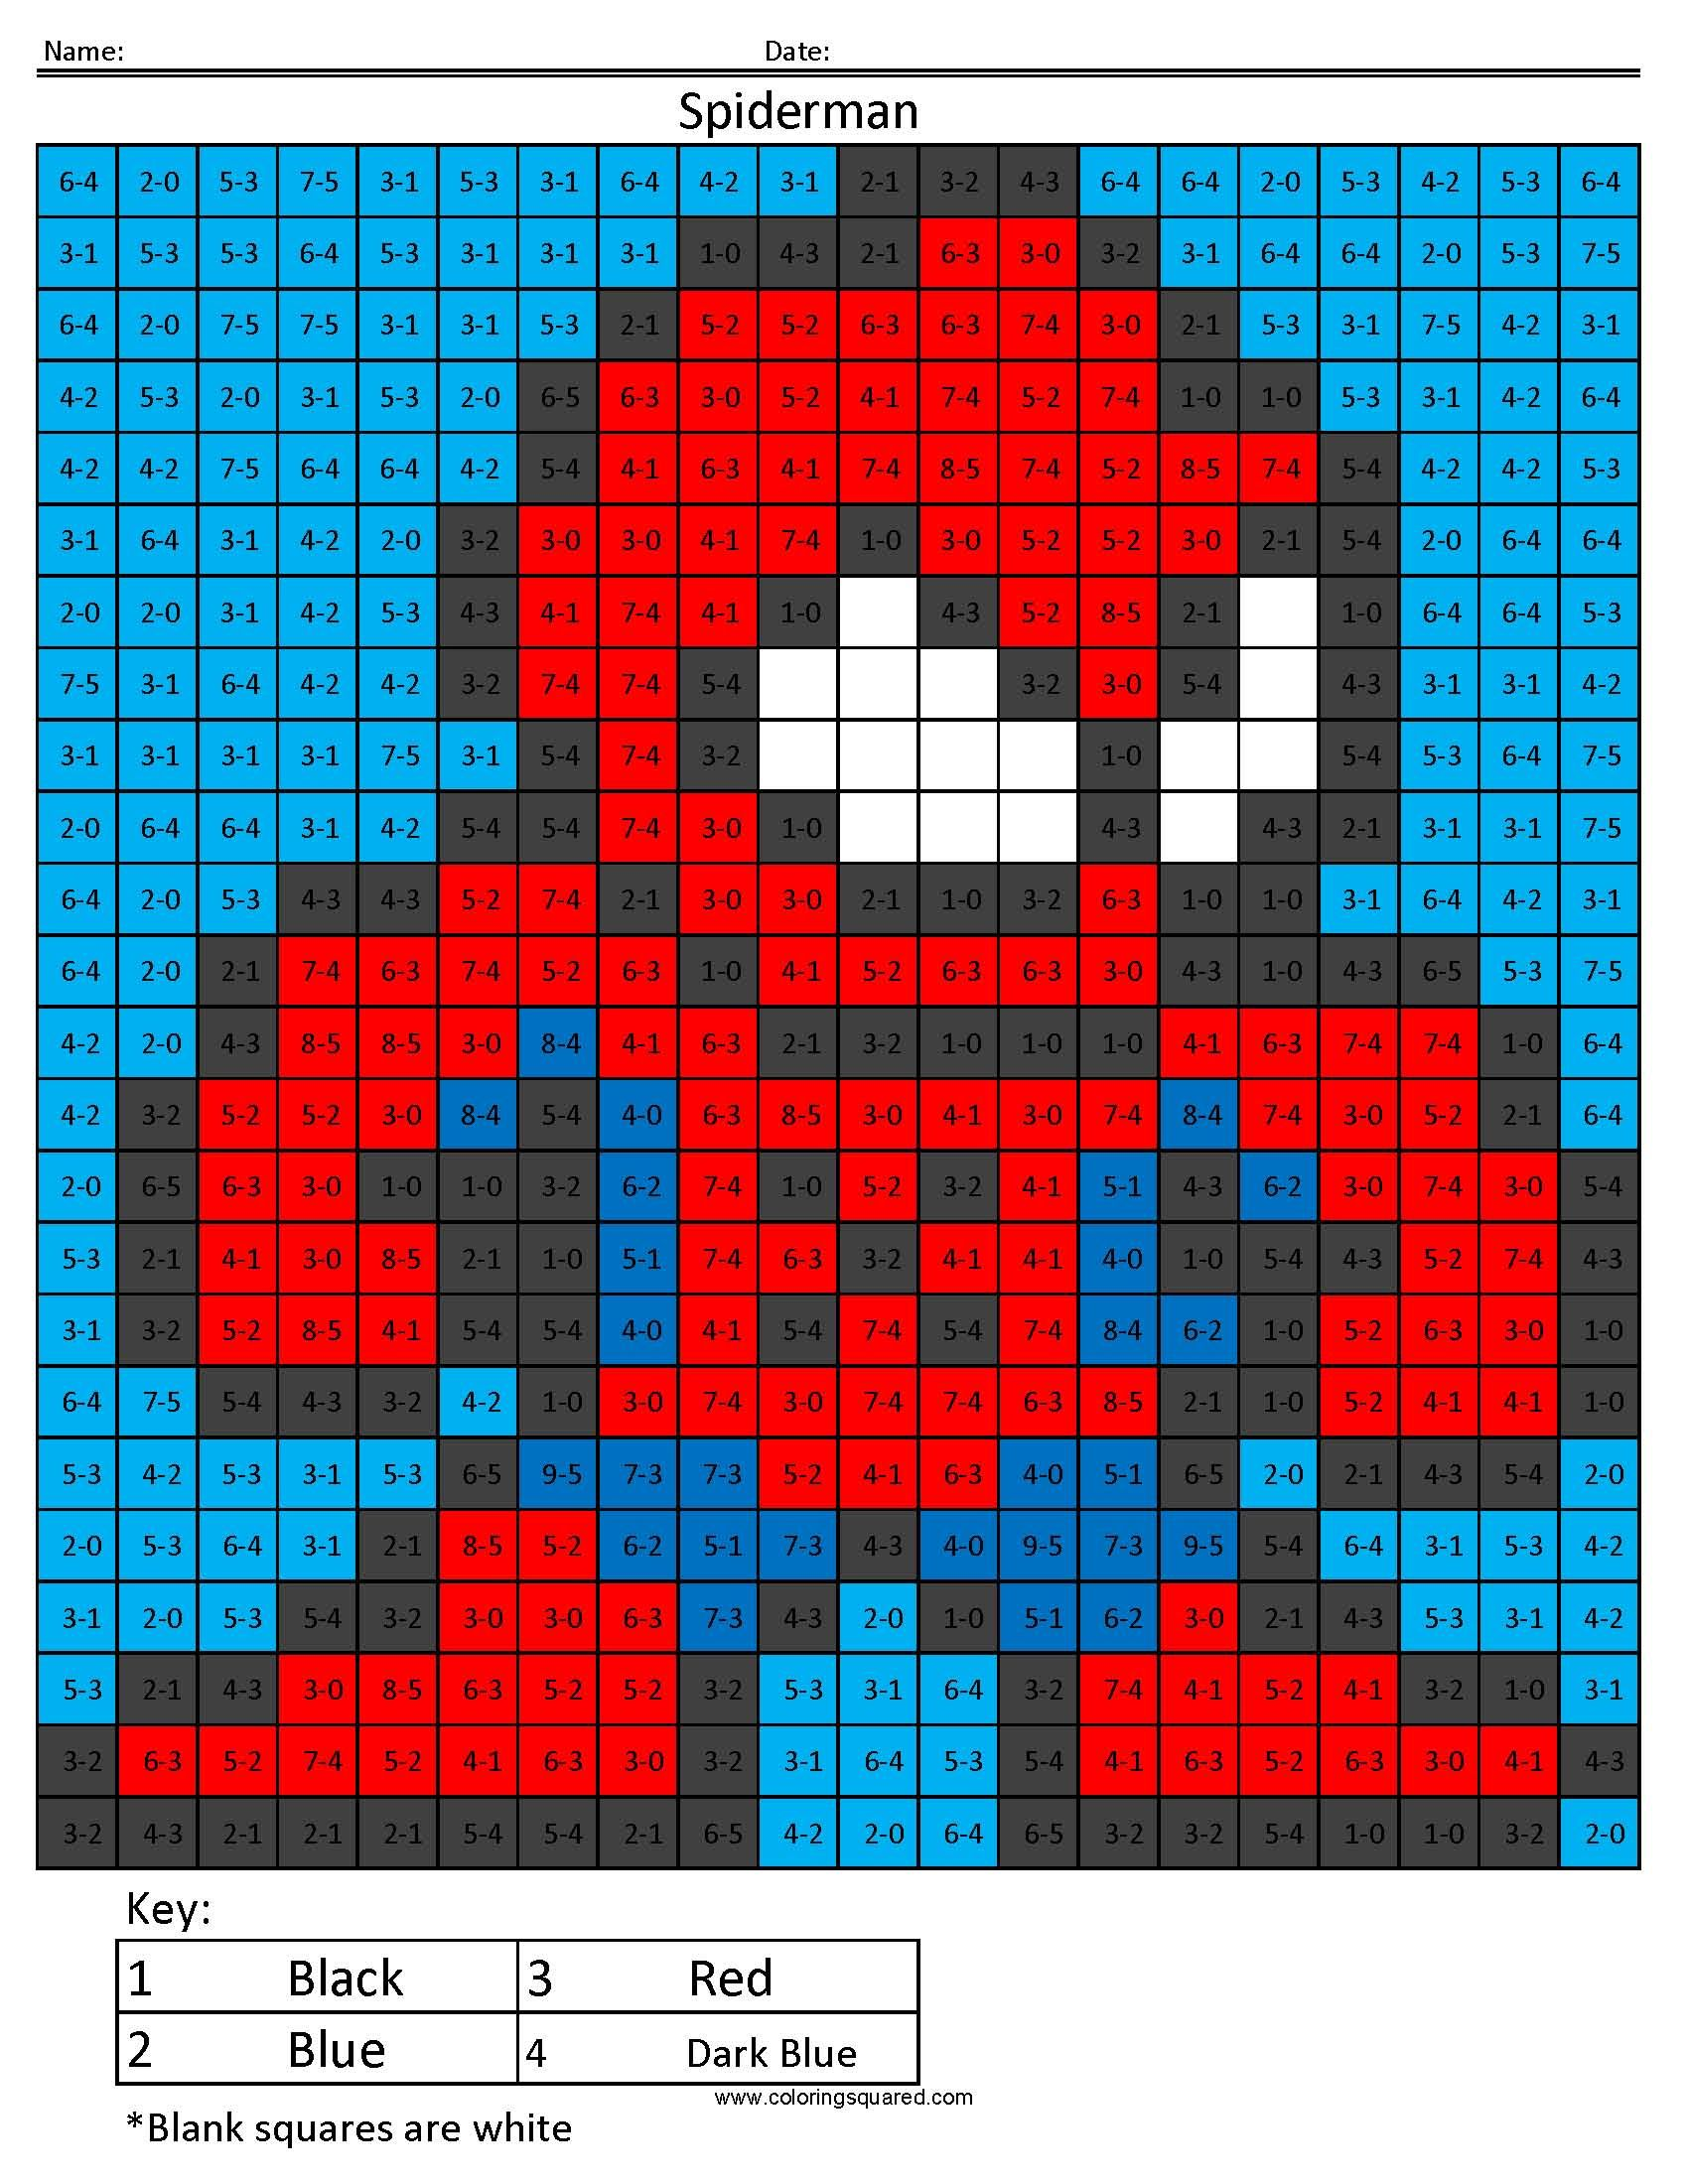 Spiderman Coloring Squared Page | Cool Education | Pinterest ...